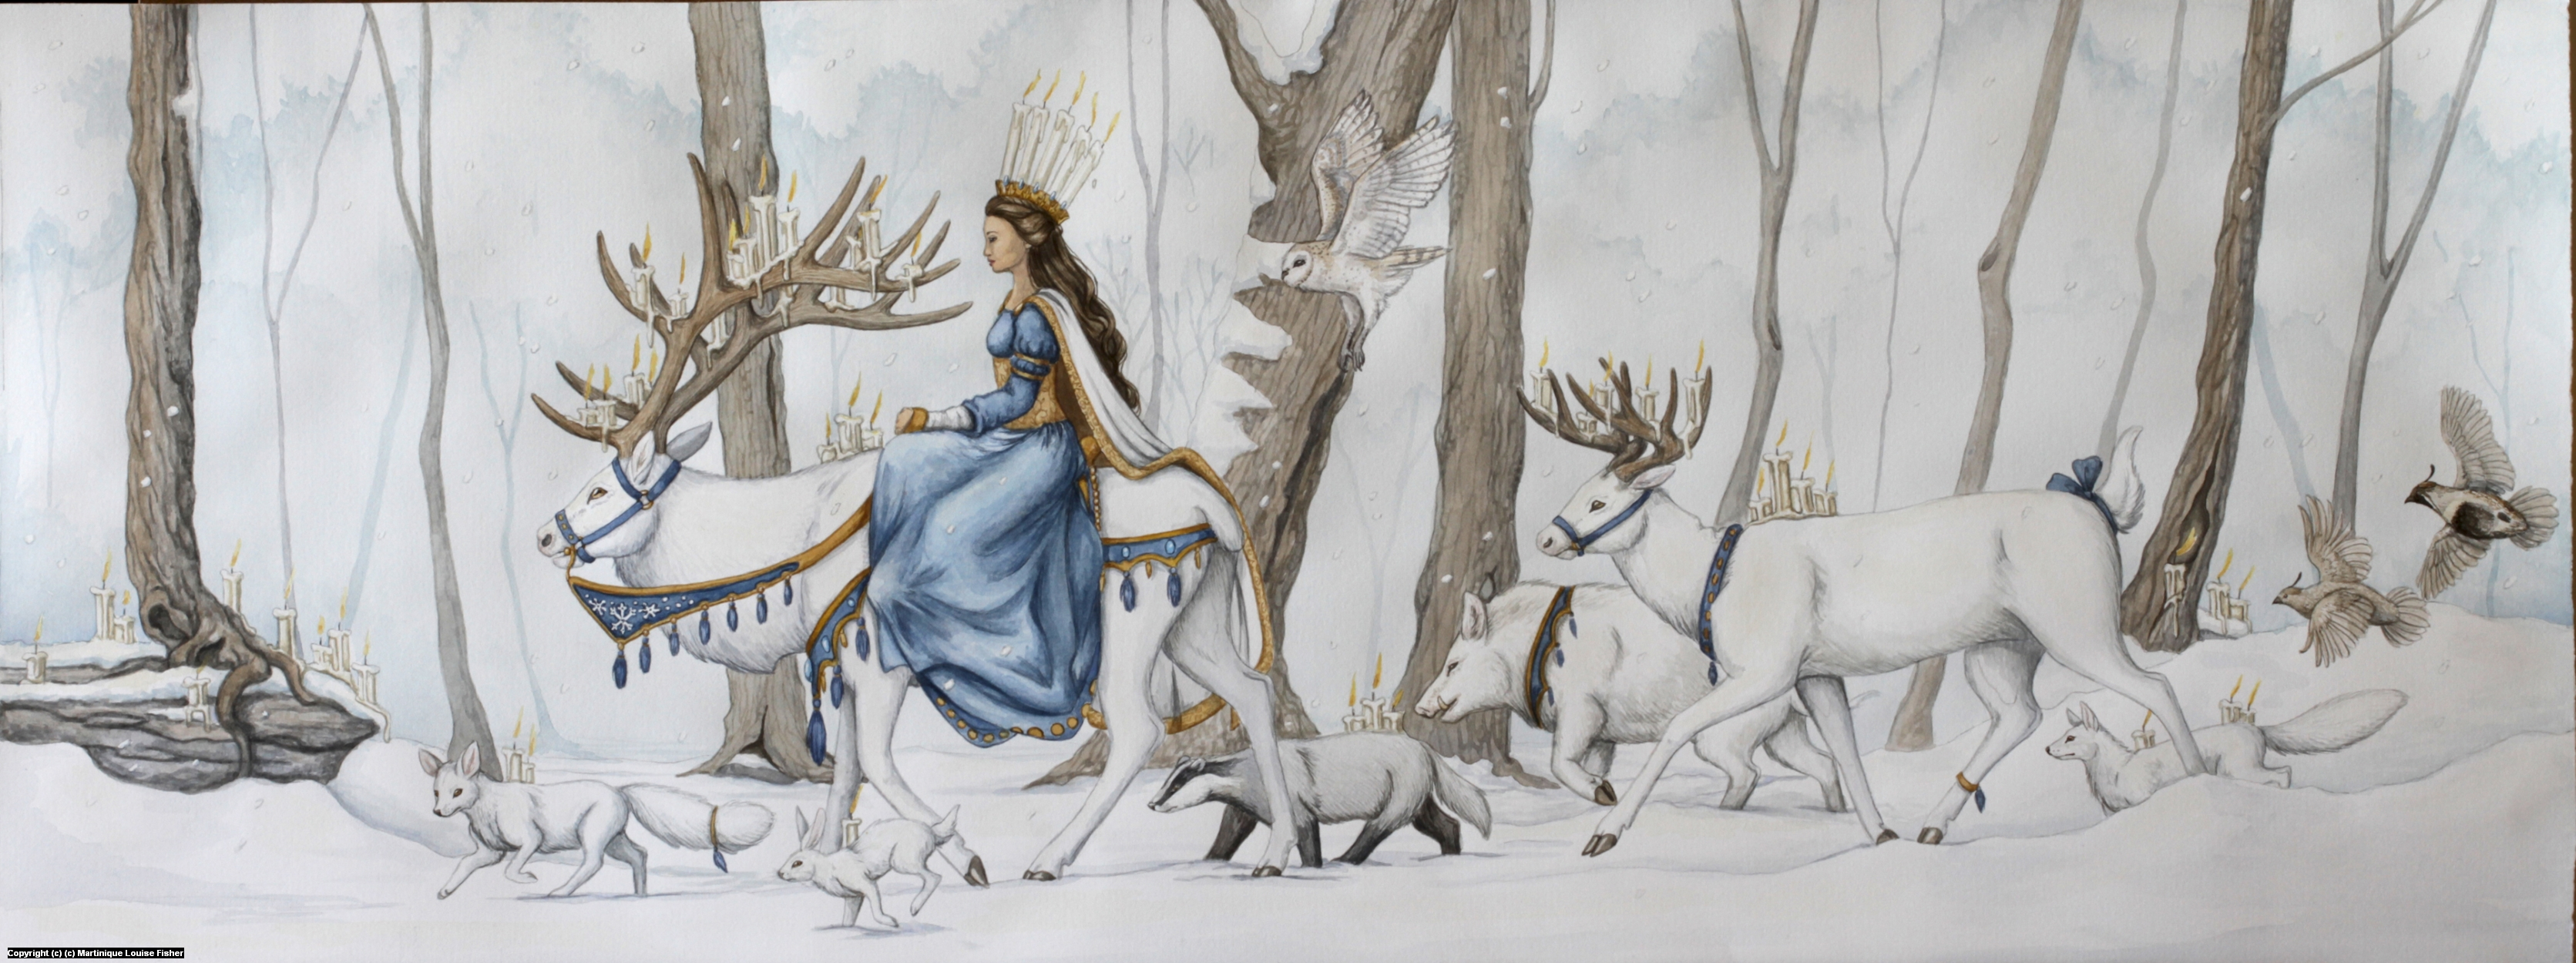 Infected By Art » Art Gallery » Martinique Fisher » Imbolc in Fantasy-Watercolor